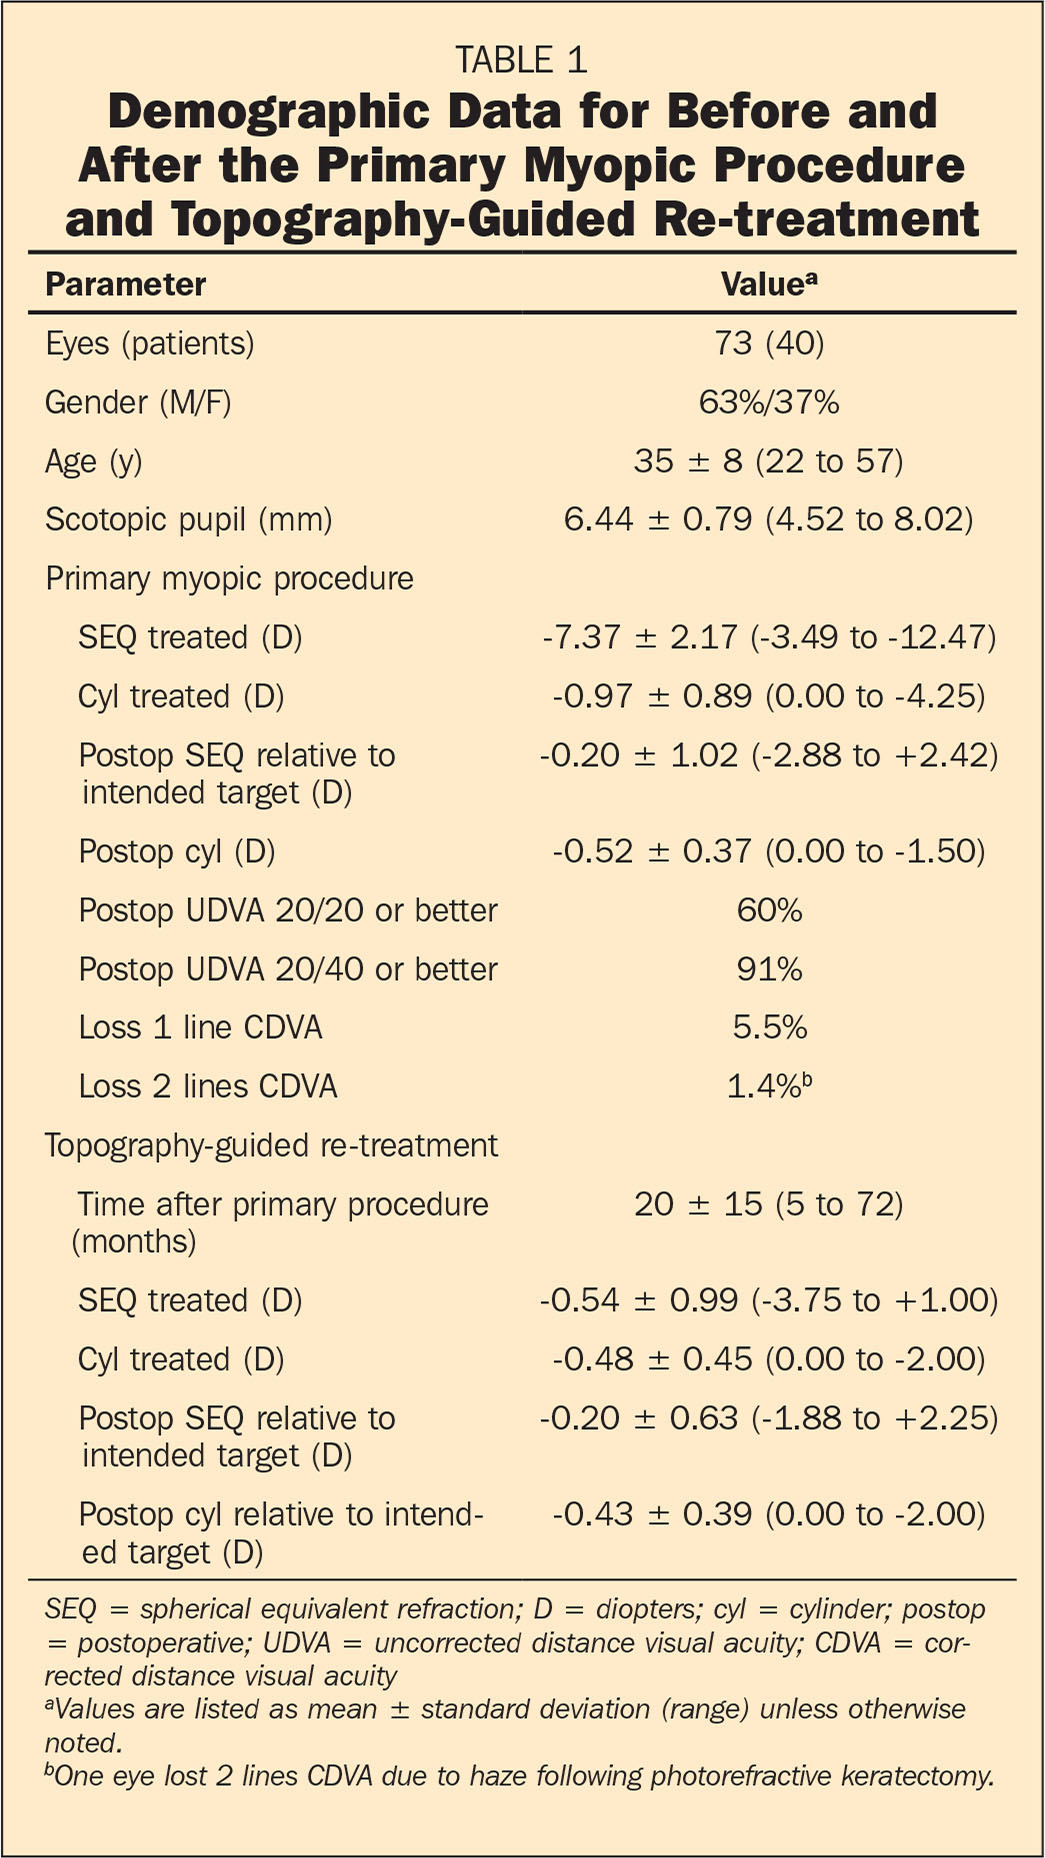 Demographic Data for Before and After the Primary Myopic Procedure and Topography-Guided Re-treatment